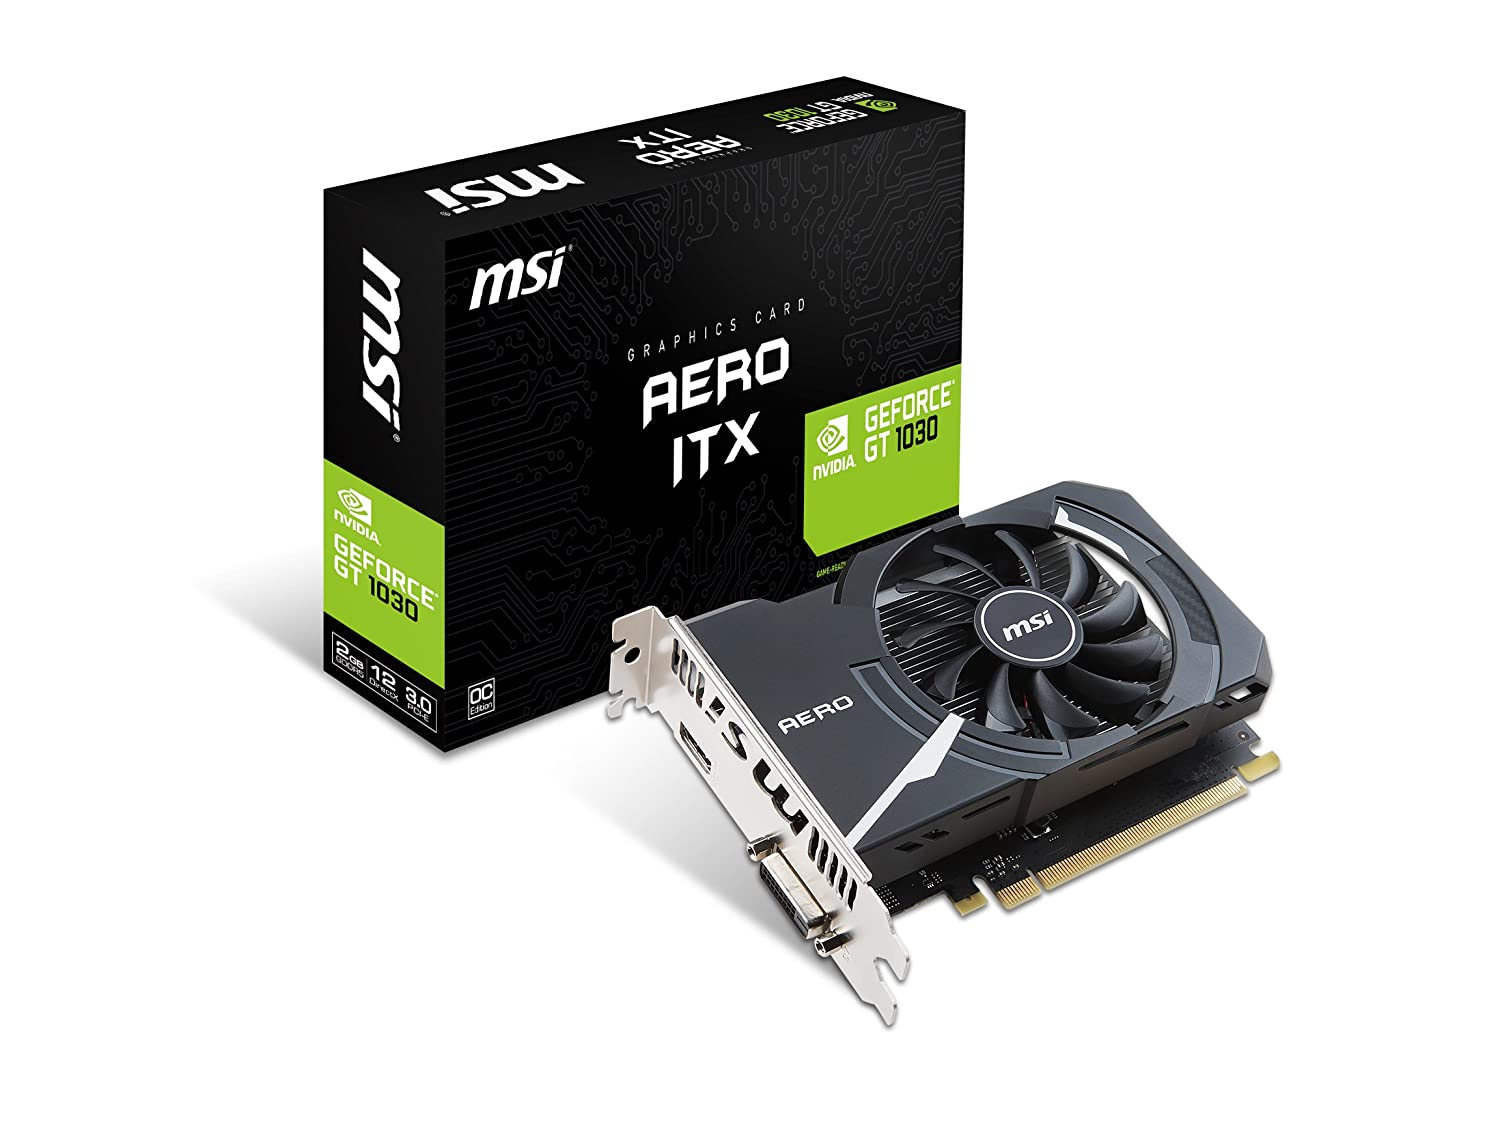 Amazon.com: MSI GAMING GeForce GT 1030 2GB GDRR5 64-bit HDCP Support  DirectX 12 ITX OC Graphics Card (GT 1030 AERO ITX 2G OC): Computers &  Accessories